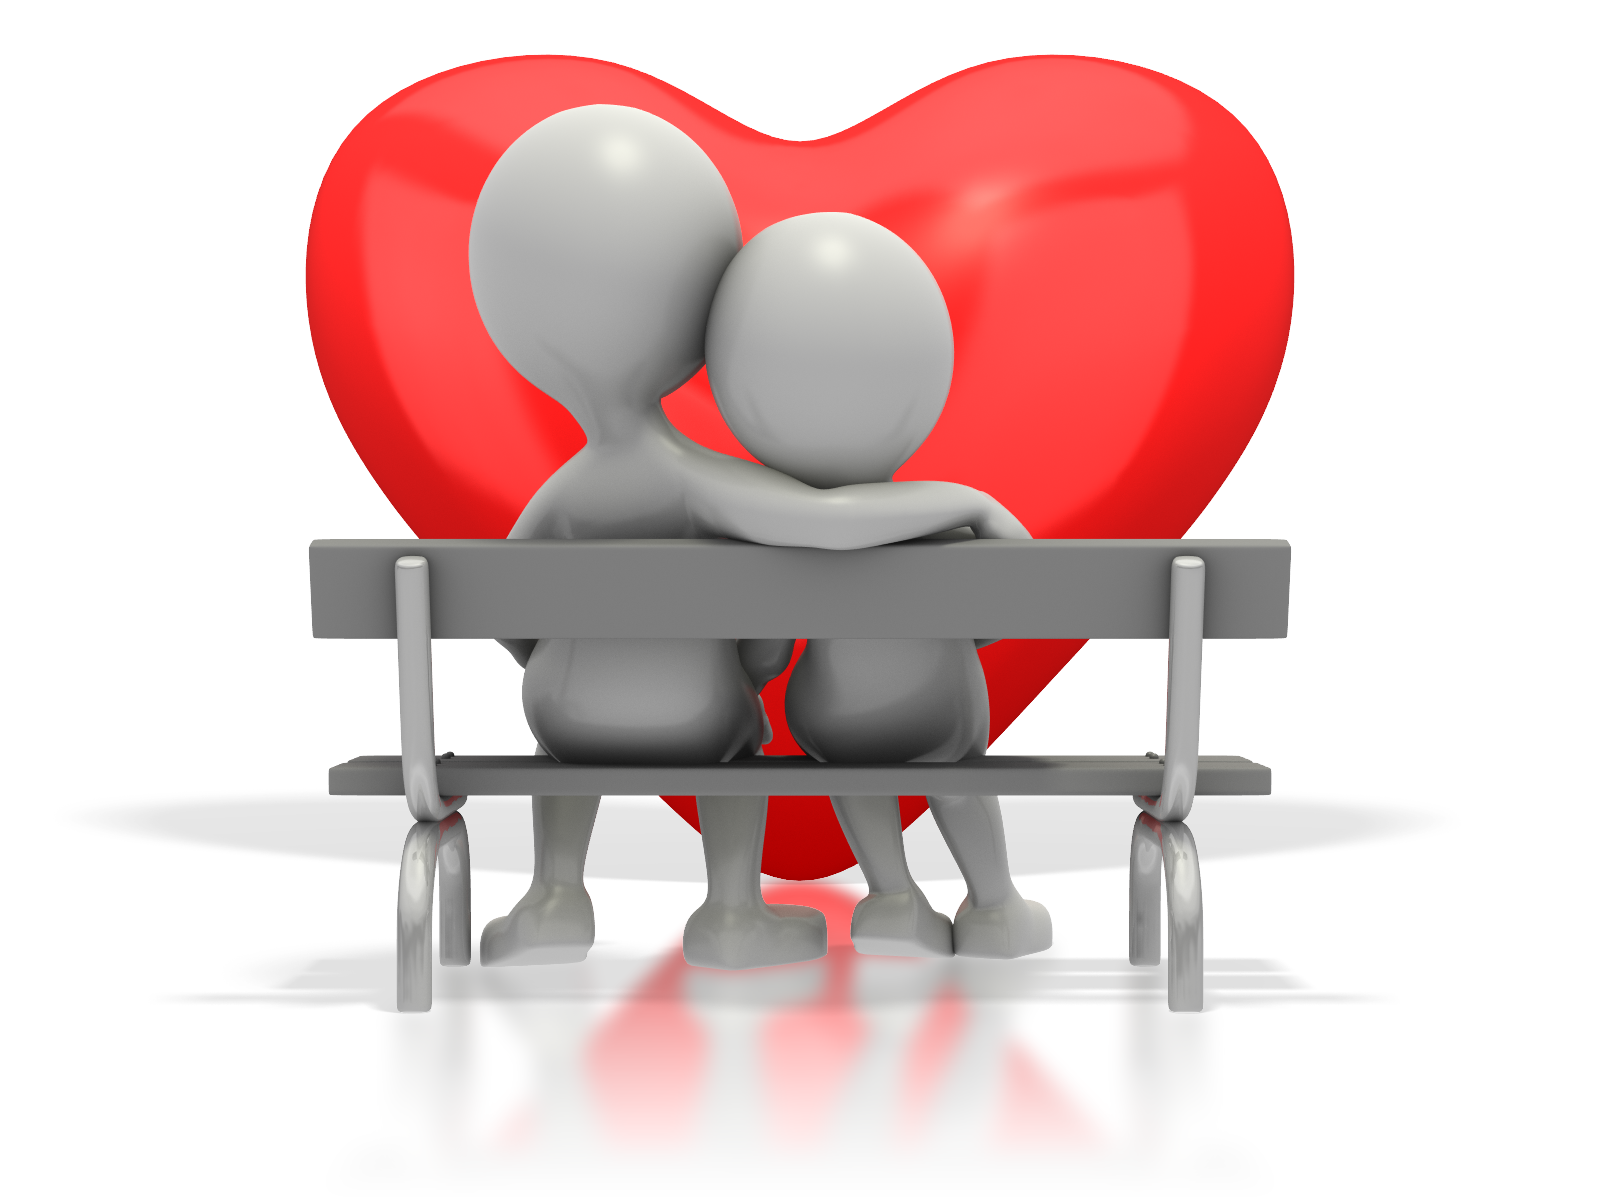 https://ulearn2bu.files.wordpress.com/2013/02/couple_sitting_on_bench_by_heart_1600_wht_1683.png